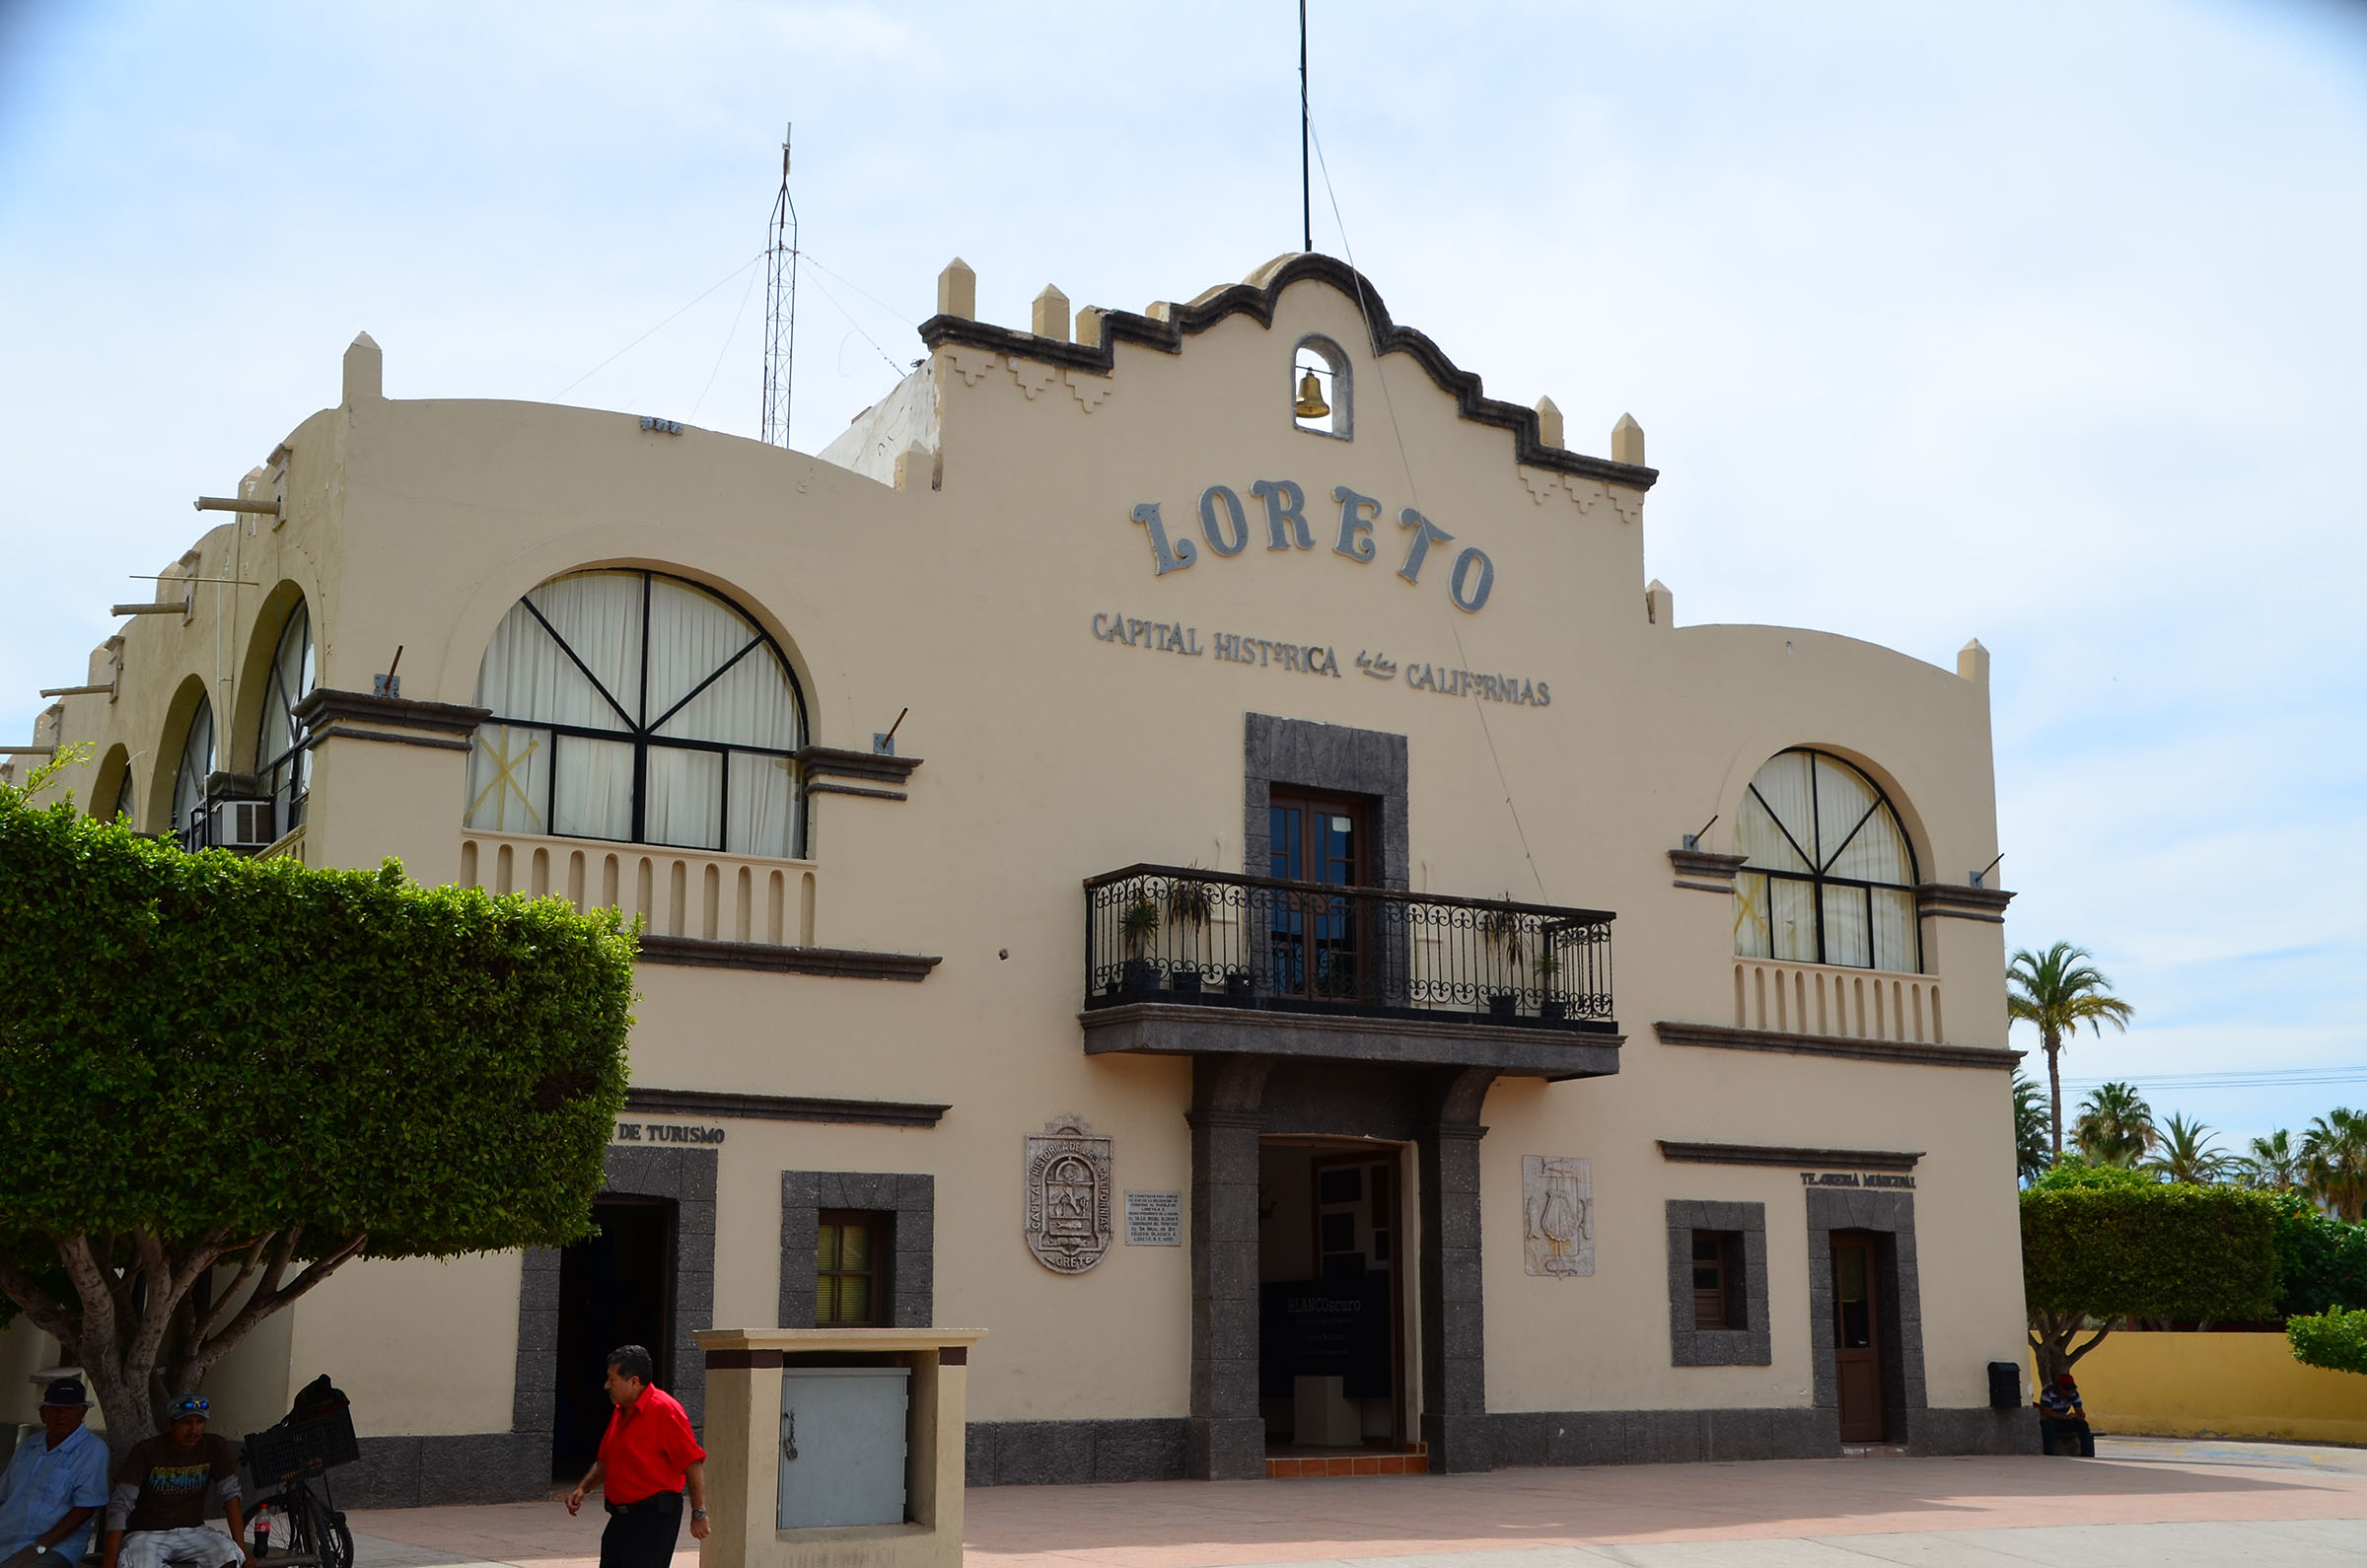 The town of Loreto was the capital of Alta and Baja California for 80 years. This is the original capital building. Photo by Jerry Ondash